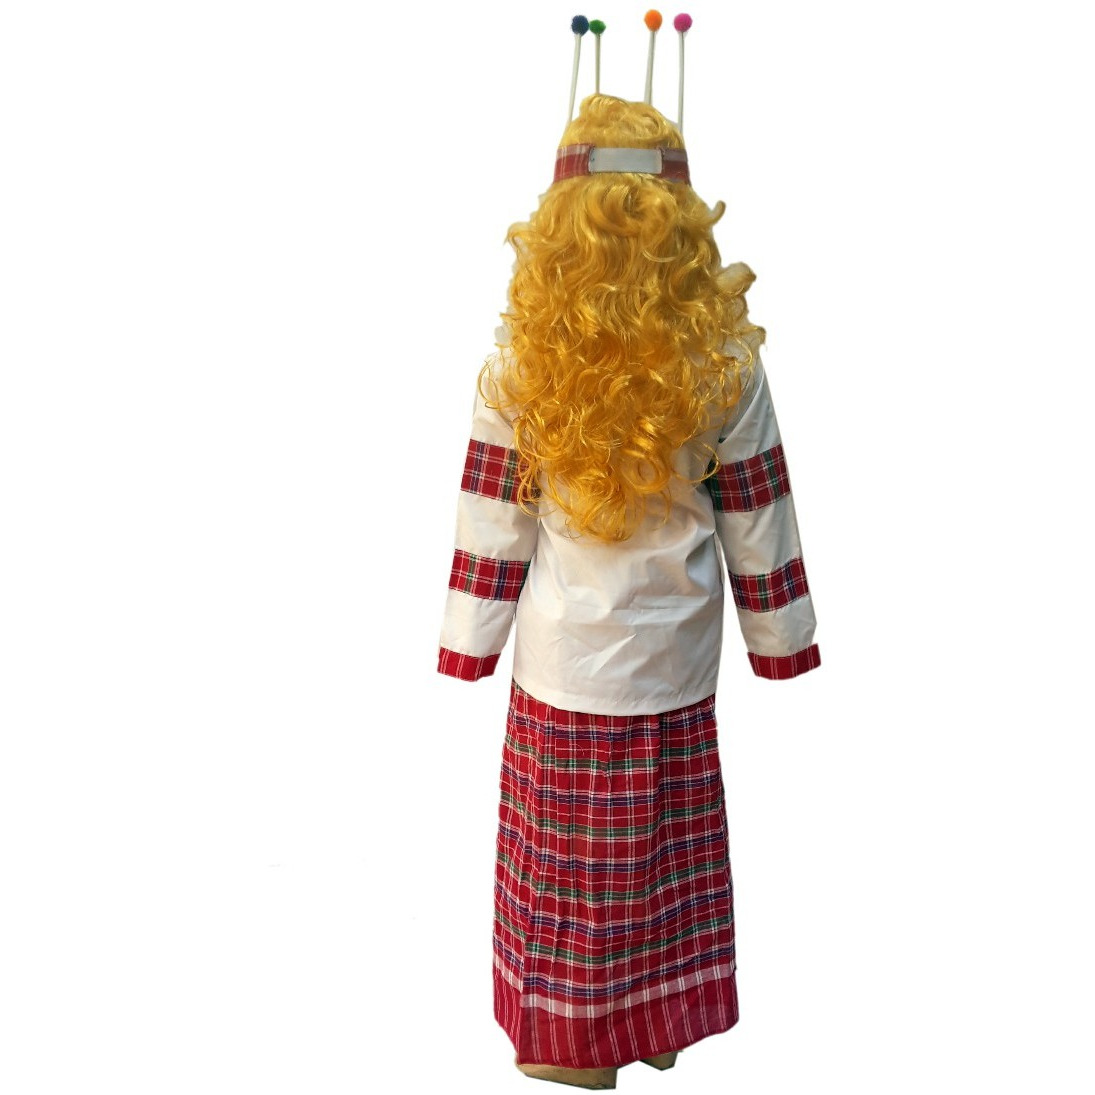 KFD Mizoram Girl fancy dress for kids,Indian State Traditional Wear for Annual function/Theme Party/Competition/Stage Shows/Birthday Party Dress